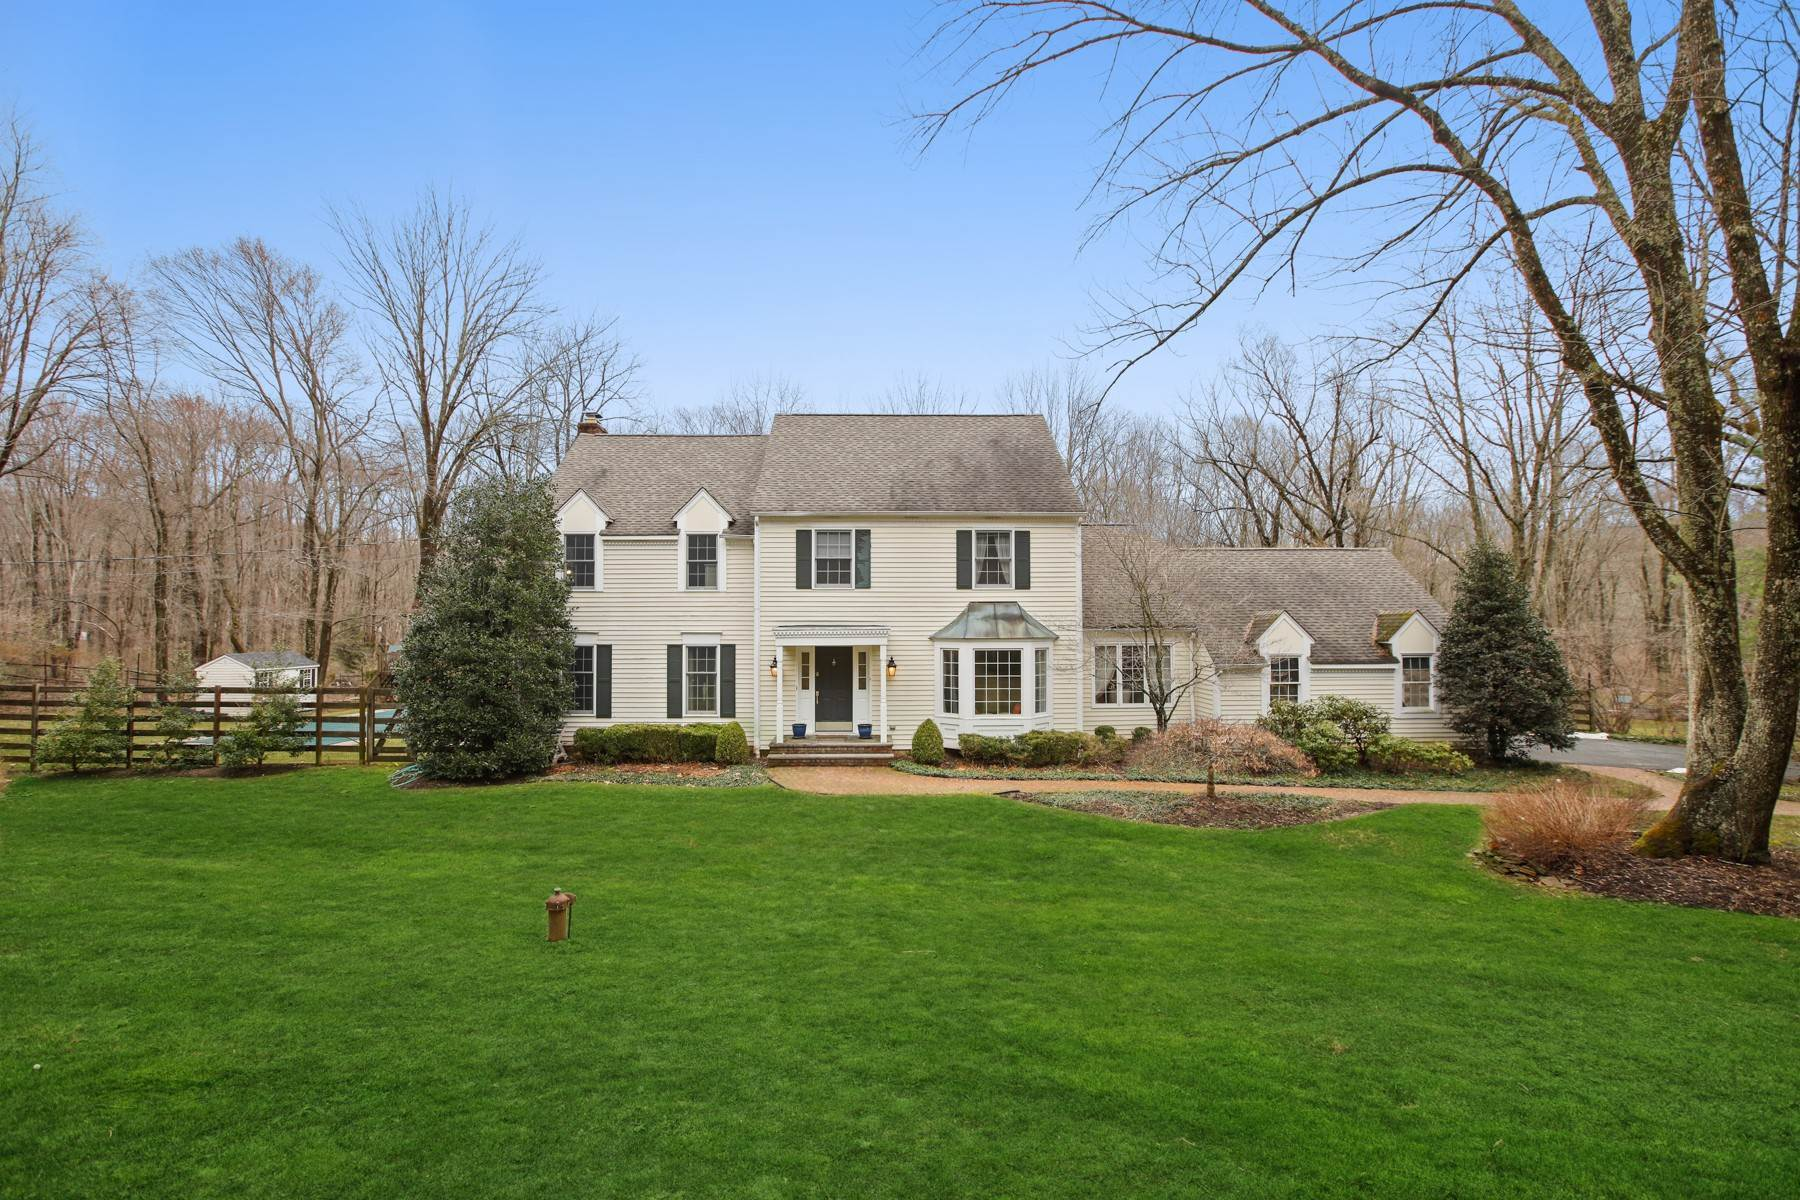 Single Family Homes for Sale at Classic Colonial in a Private, Serene Setting 5 Glen Gary Drive Mendham, New Jersey 07945 United States